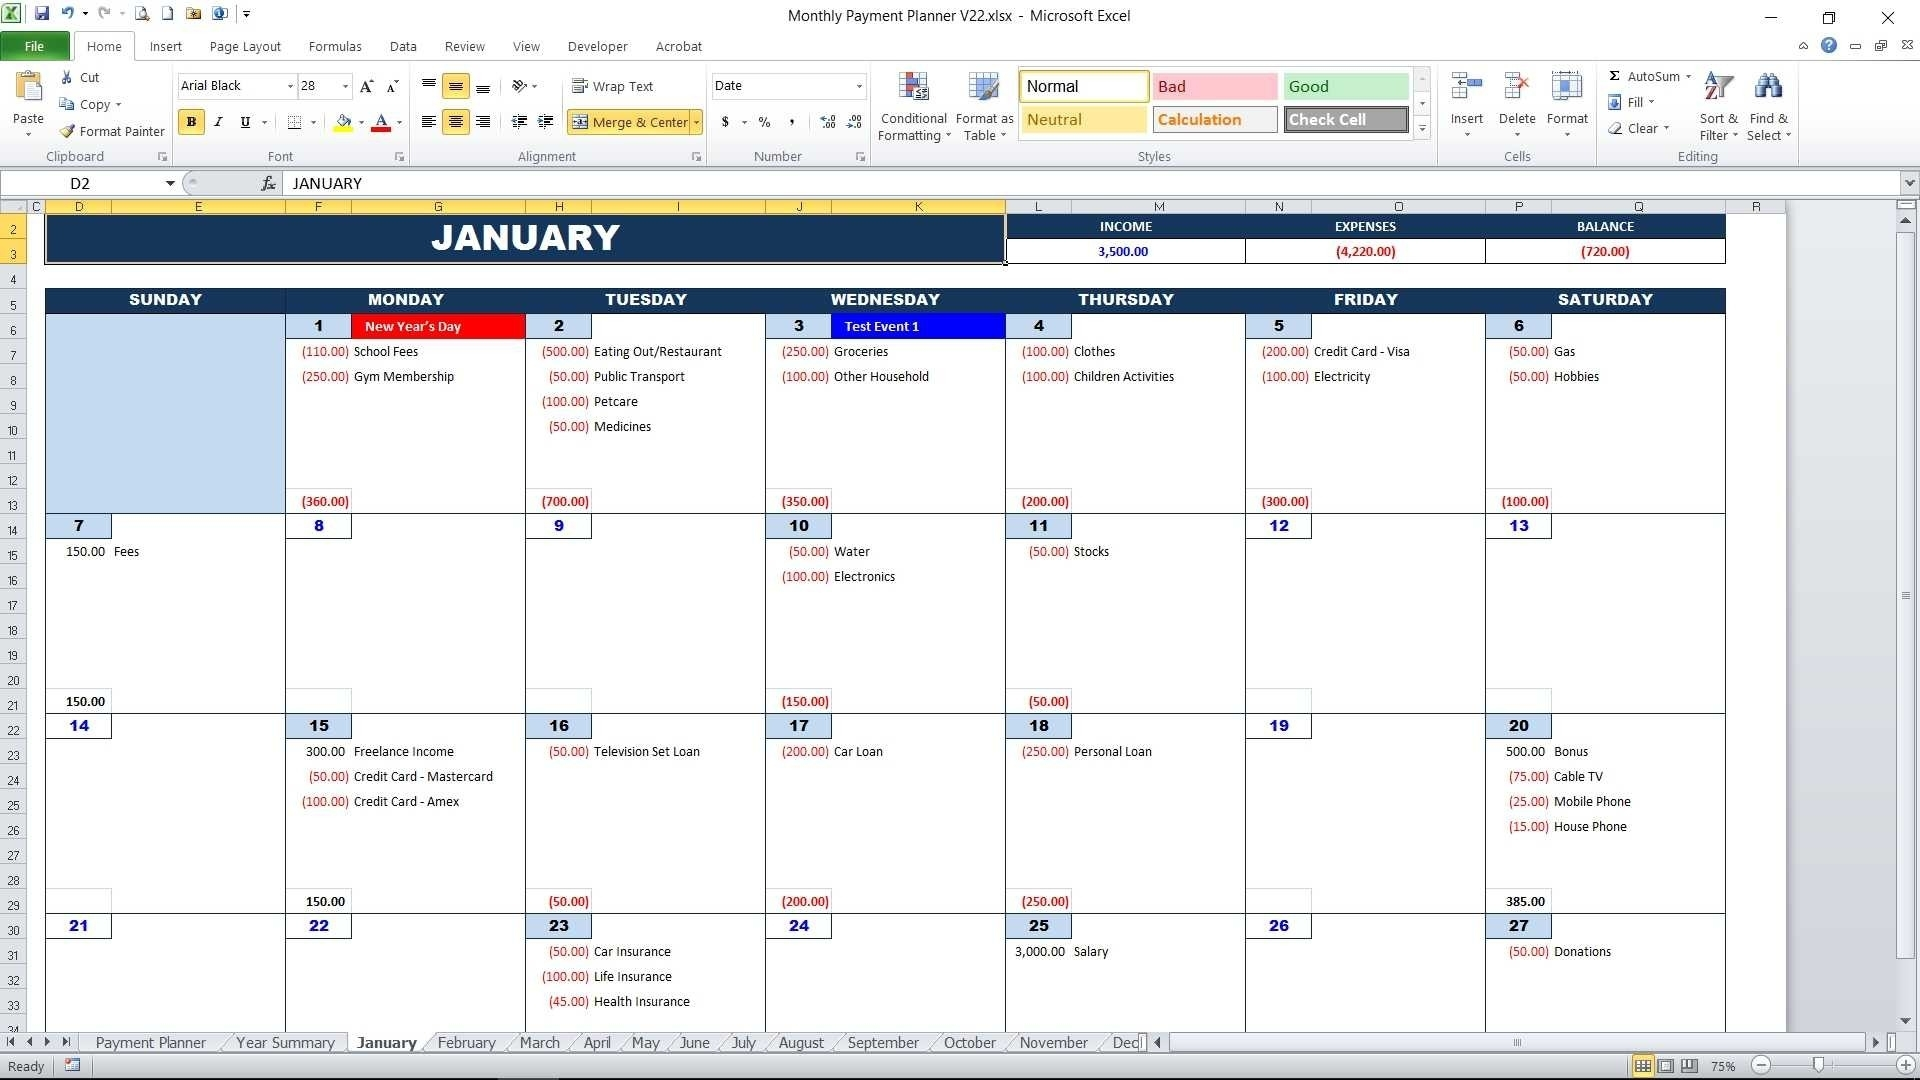 Monthly Payment Planner Calendar View2 With Monthly Bill Calendar with Monthly Bill Calendar For A Year